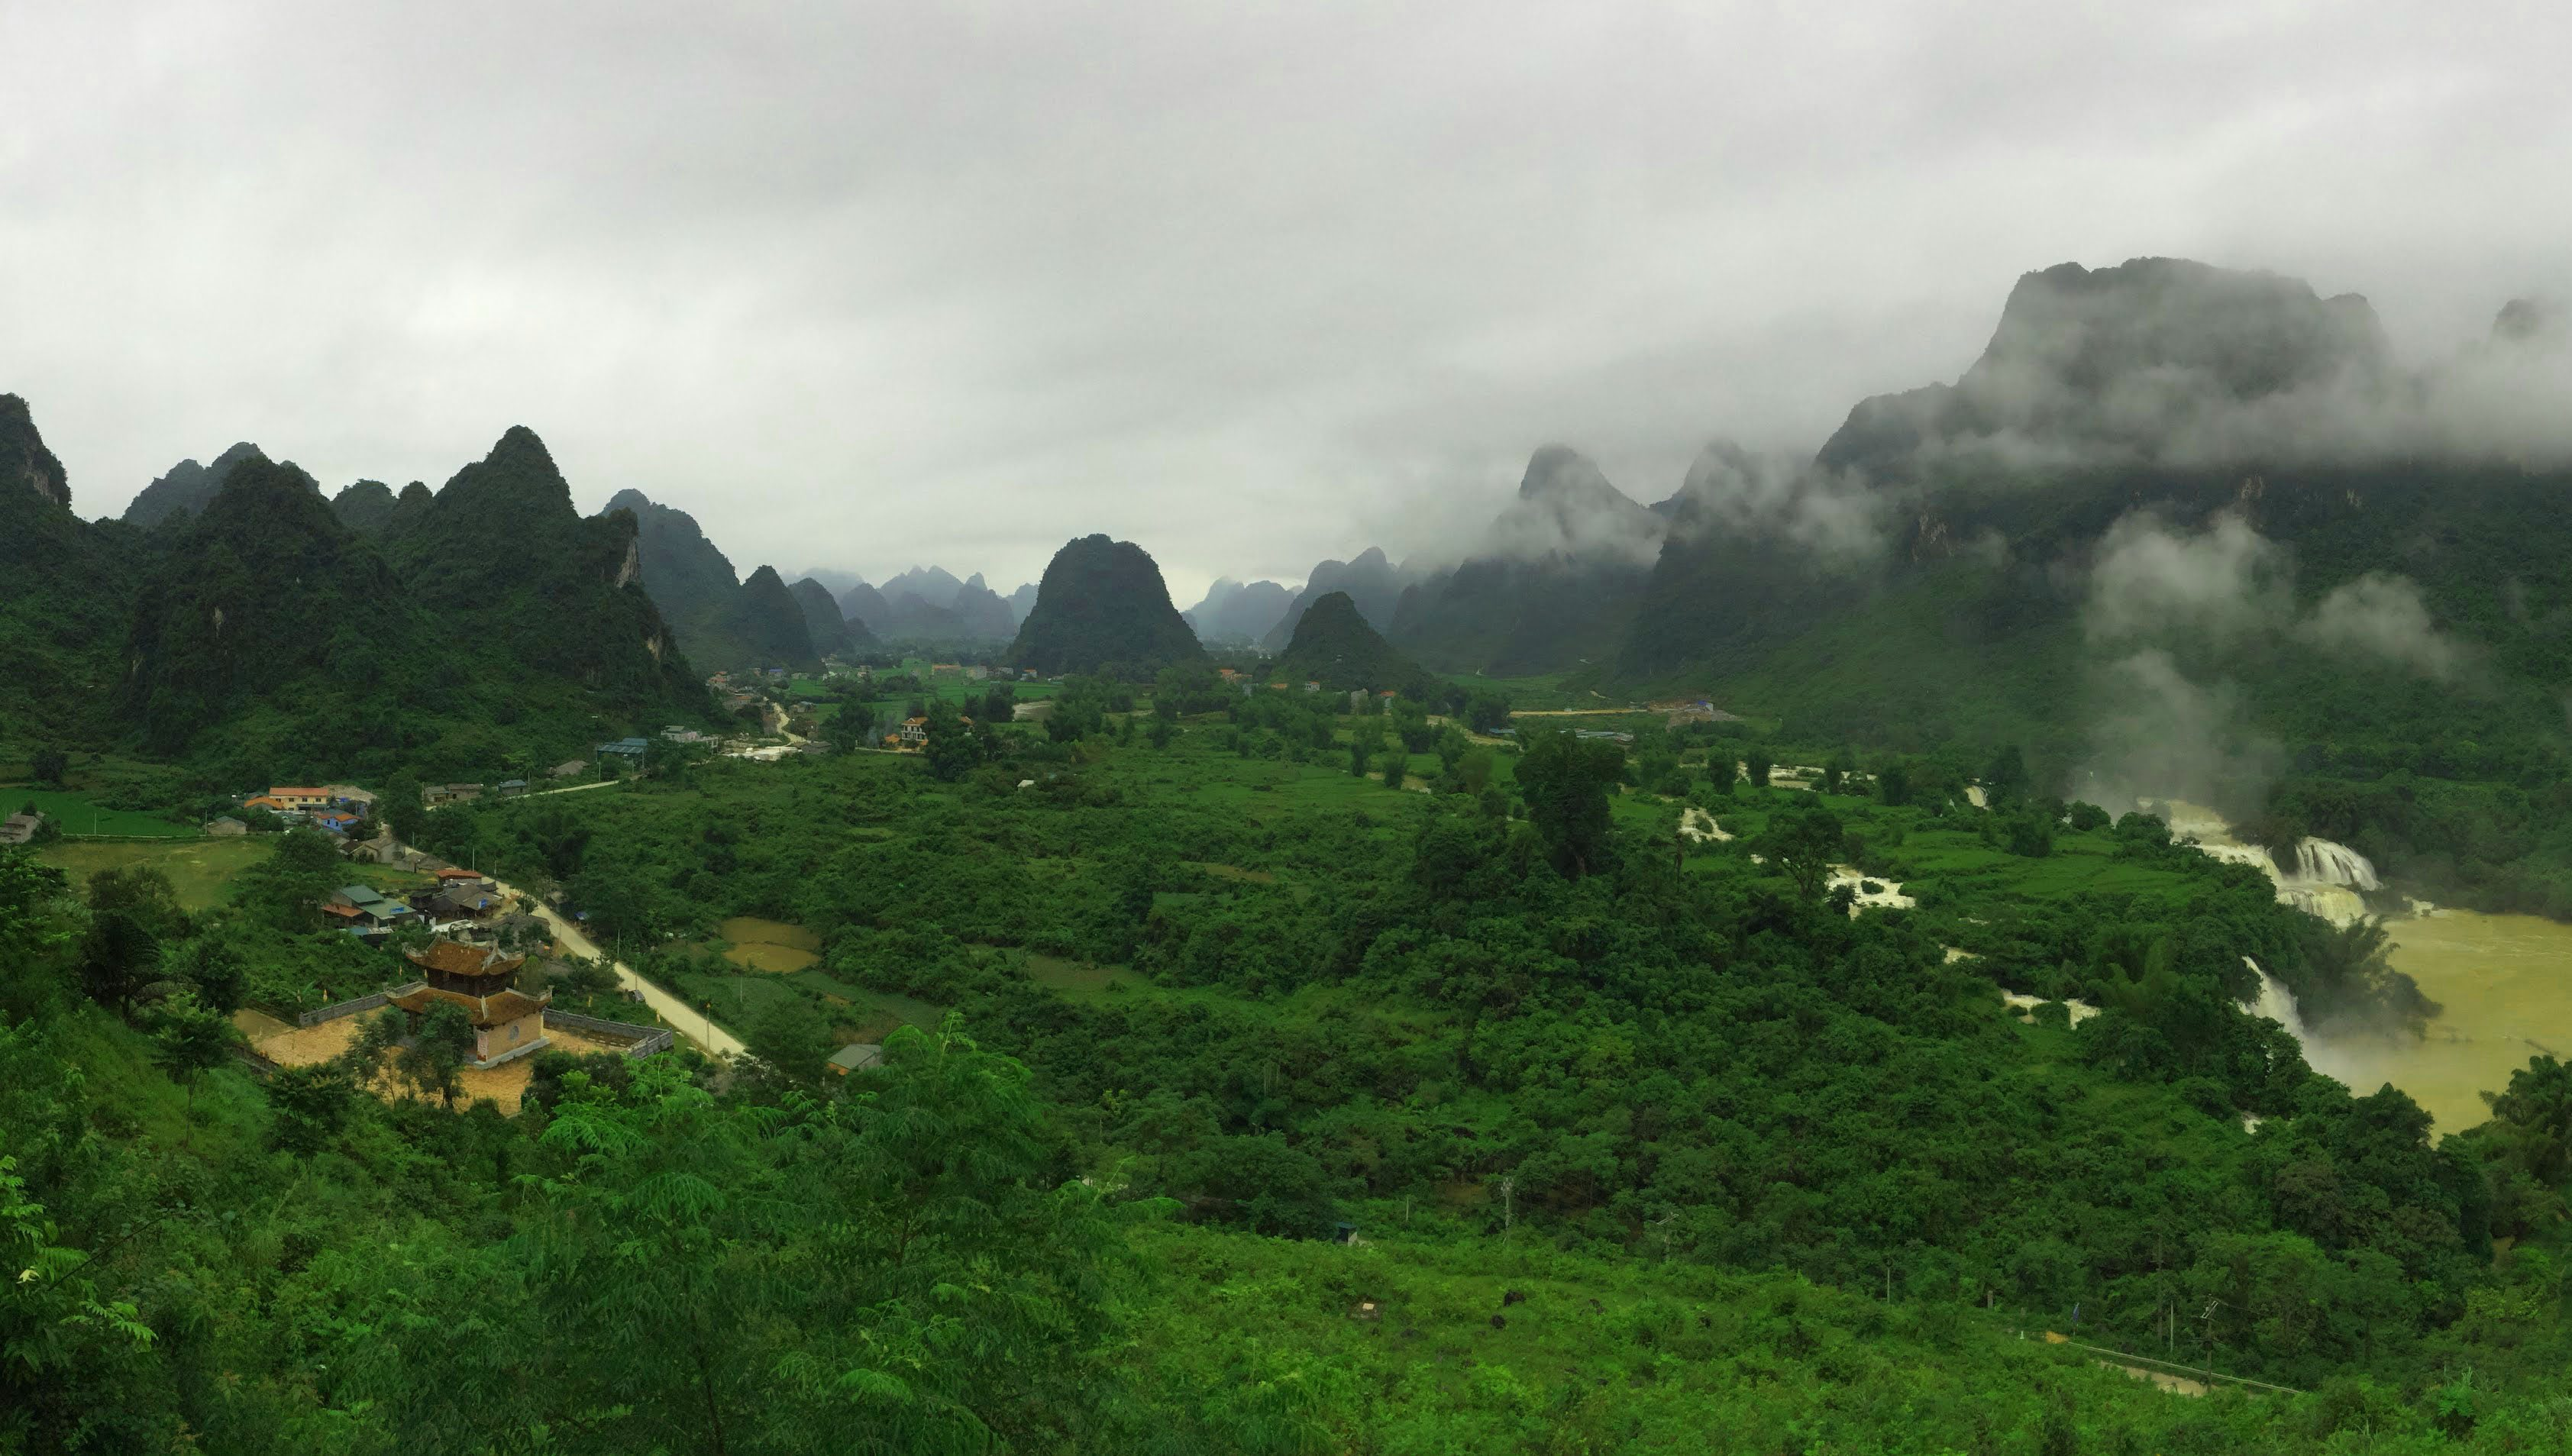 My tour trip in Cao Bang